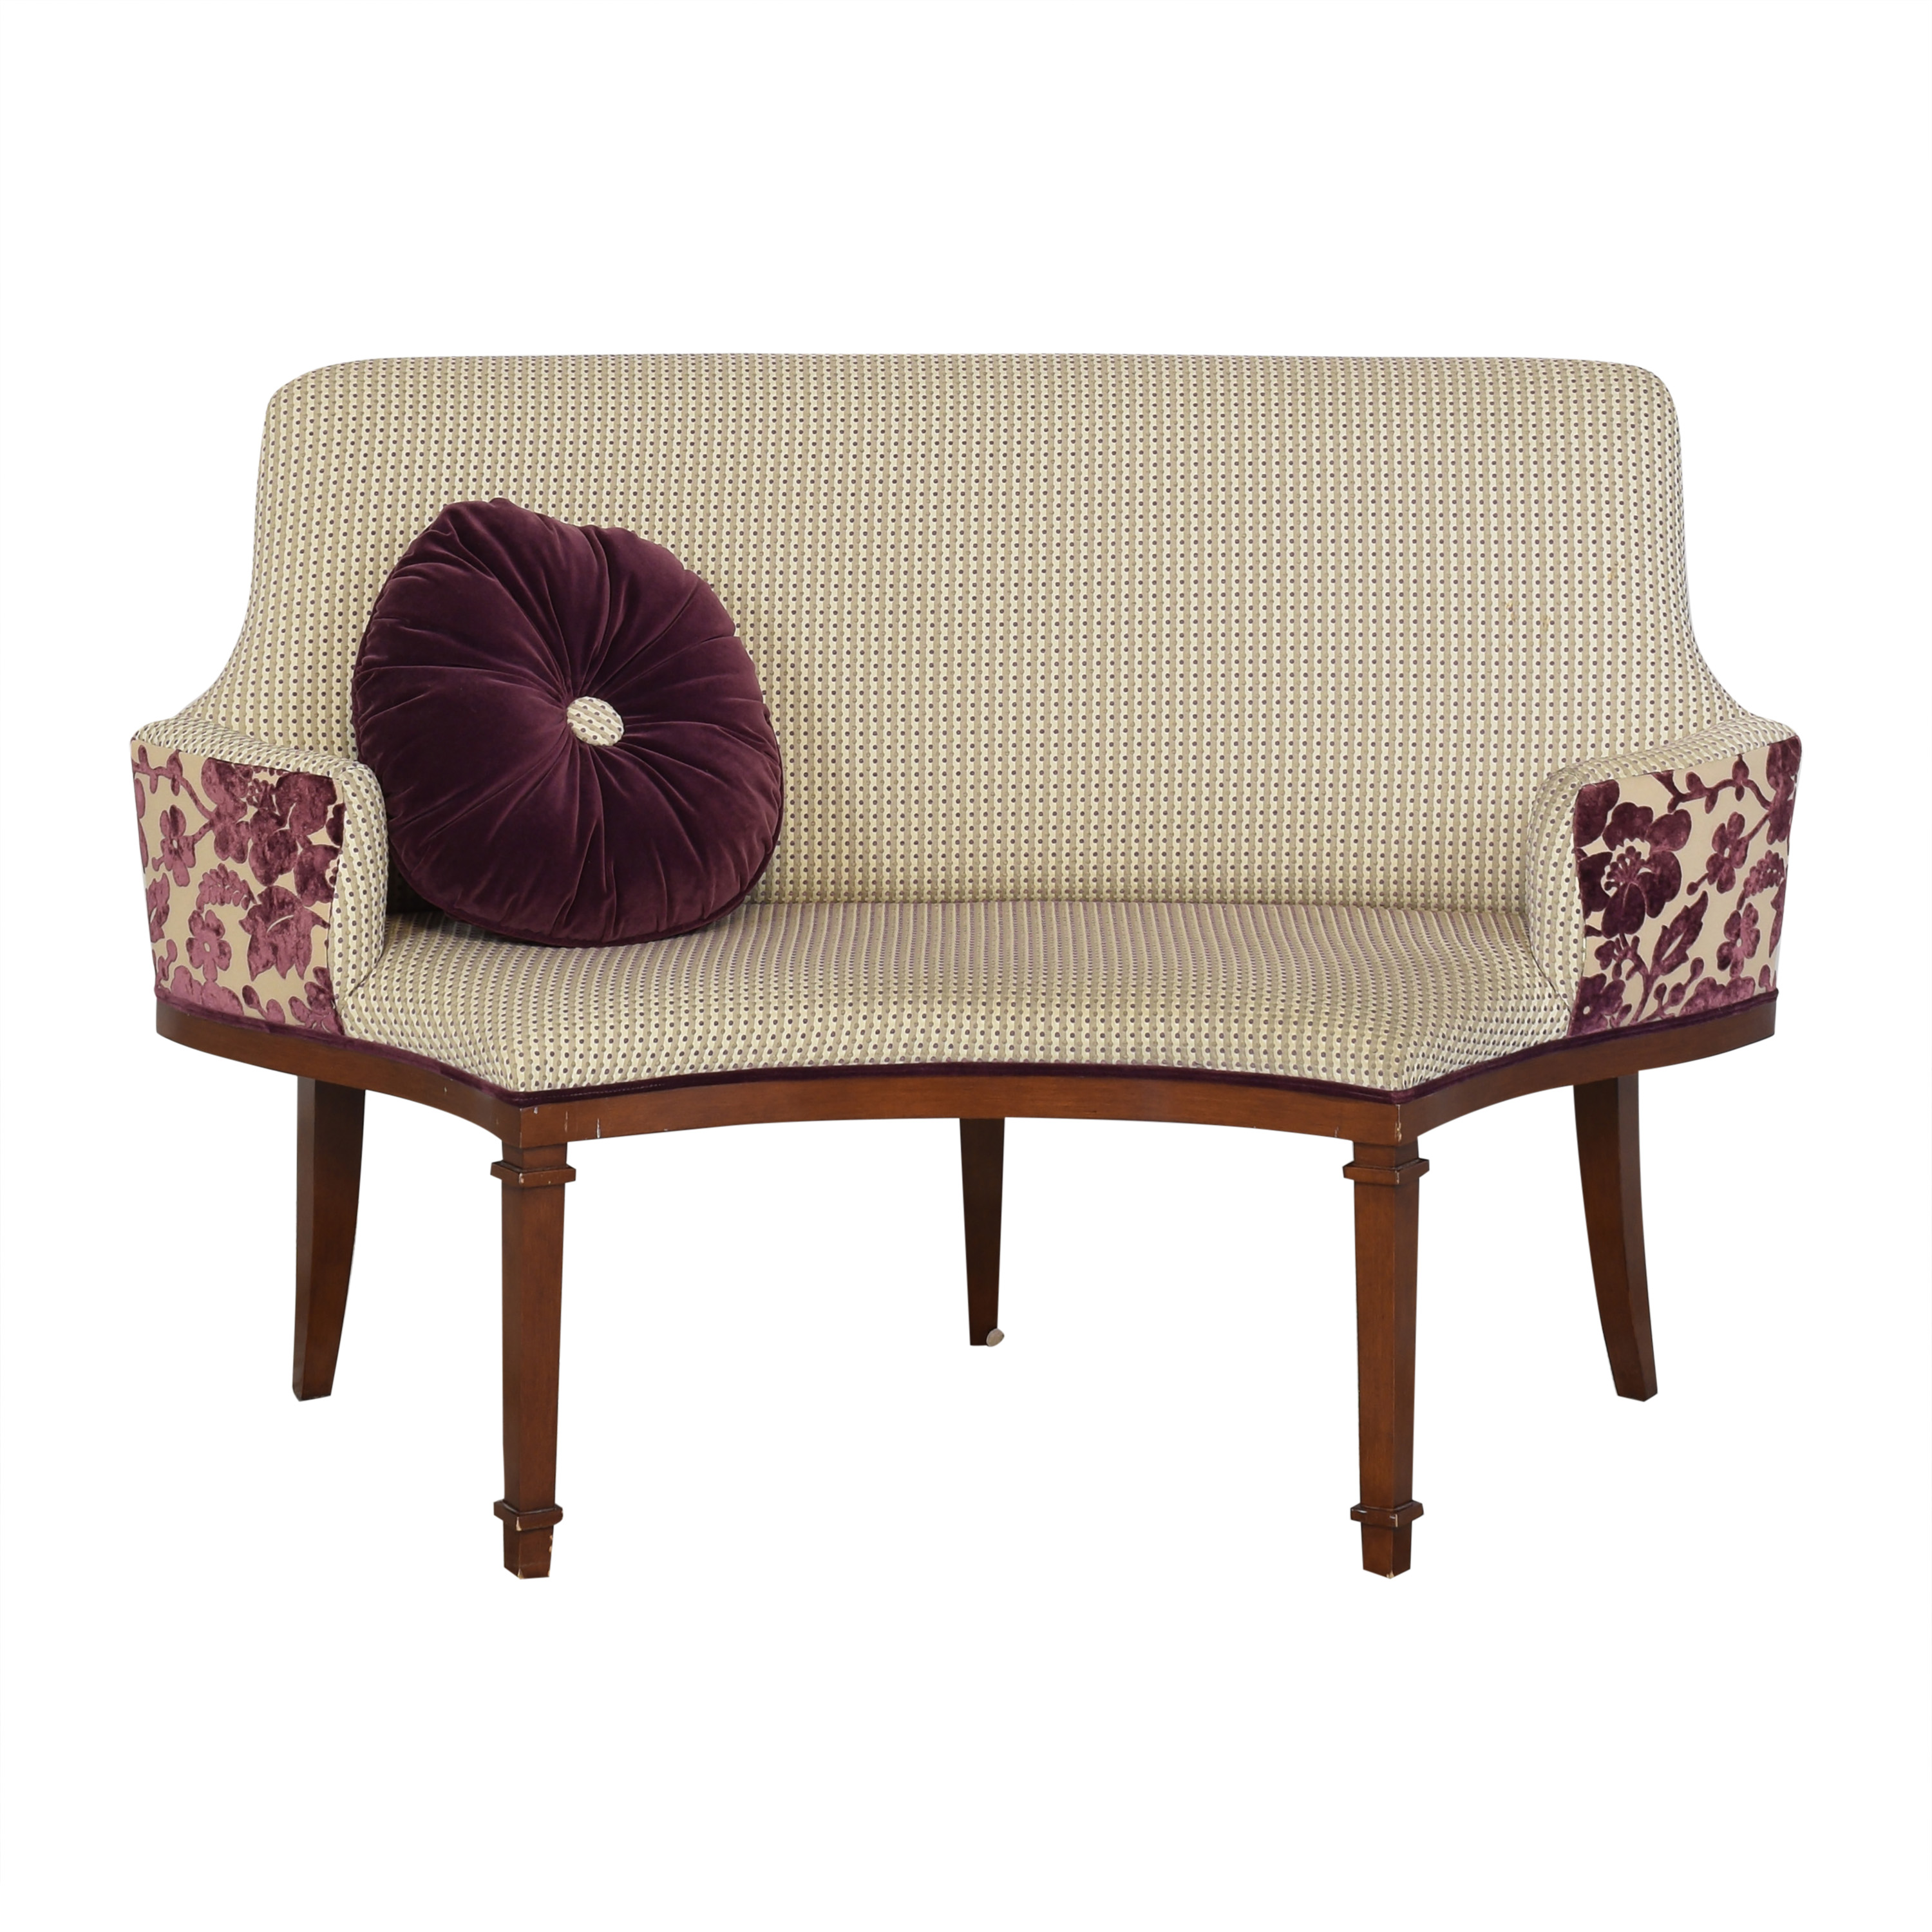 Artistic Frame Curved Banquette / Sofas